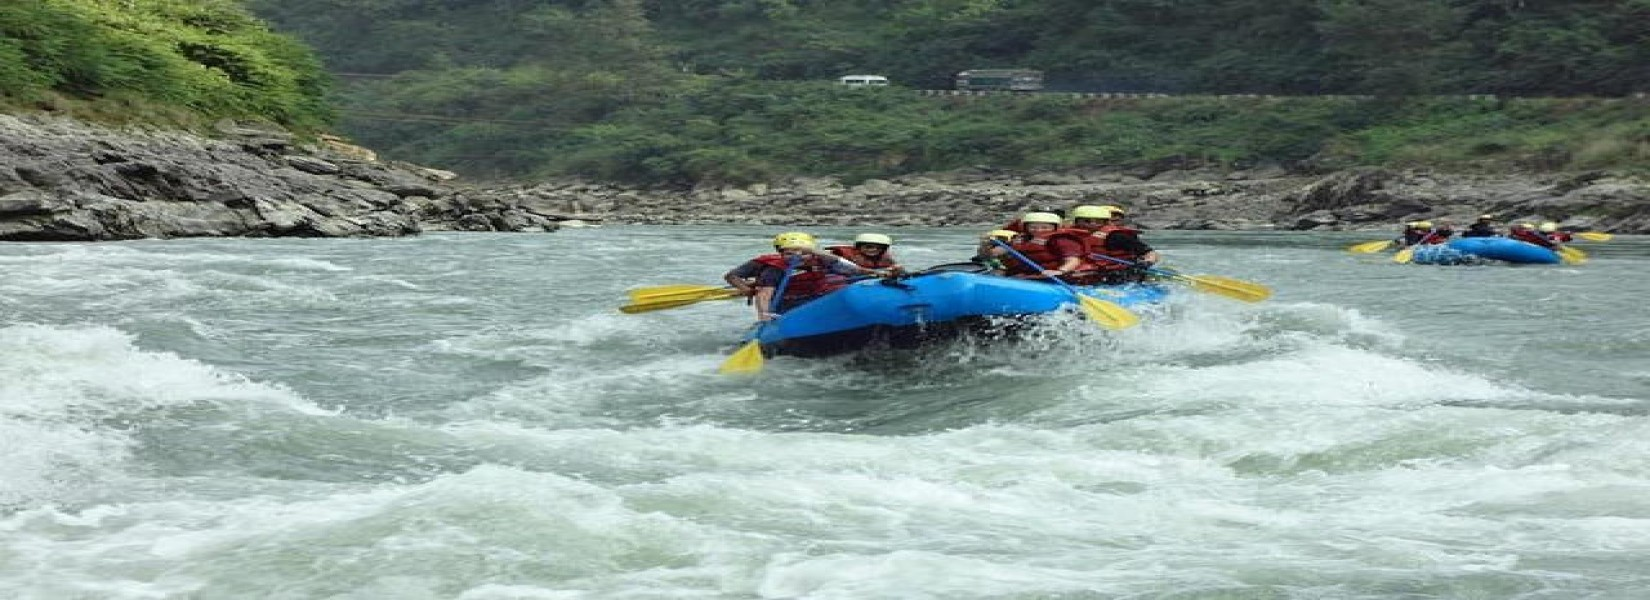 fun and adventures of Rafting over Trisuli River - 1 Day